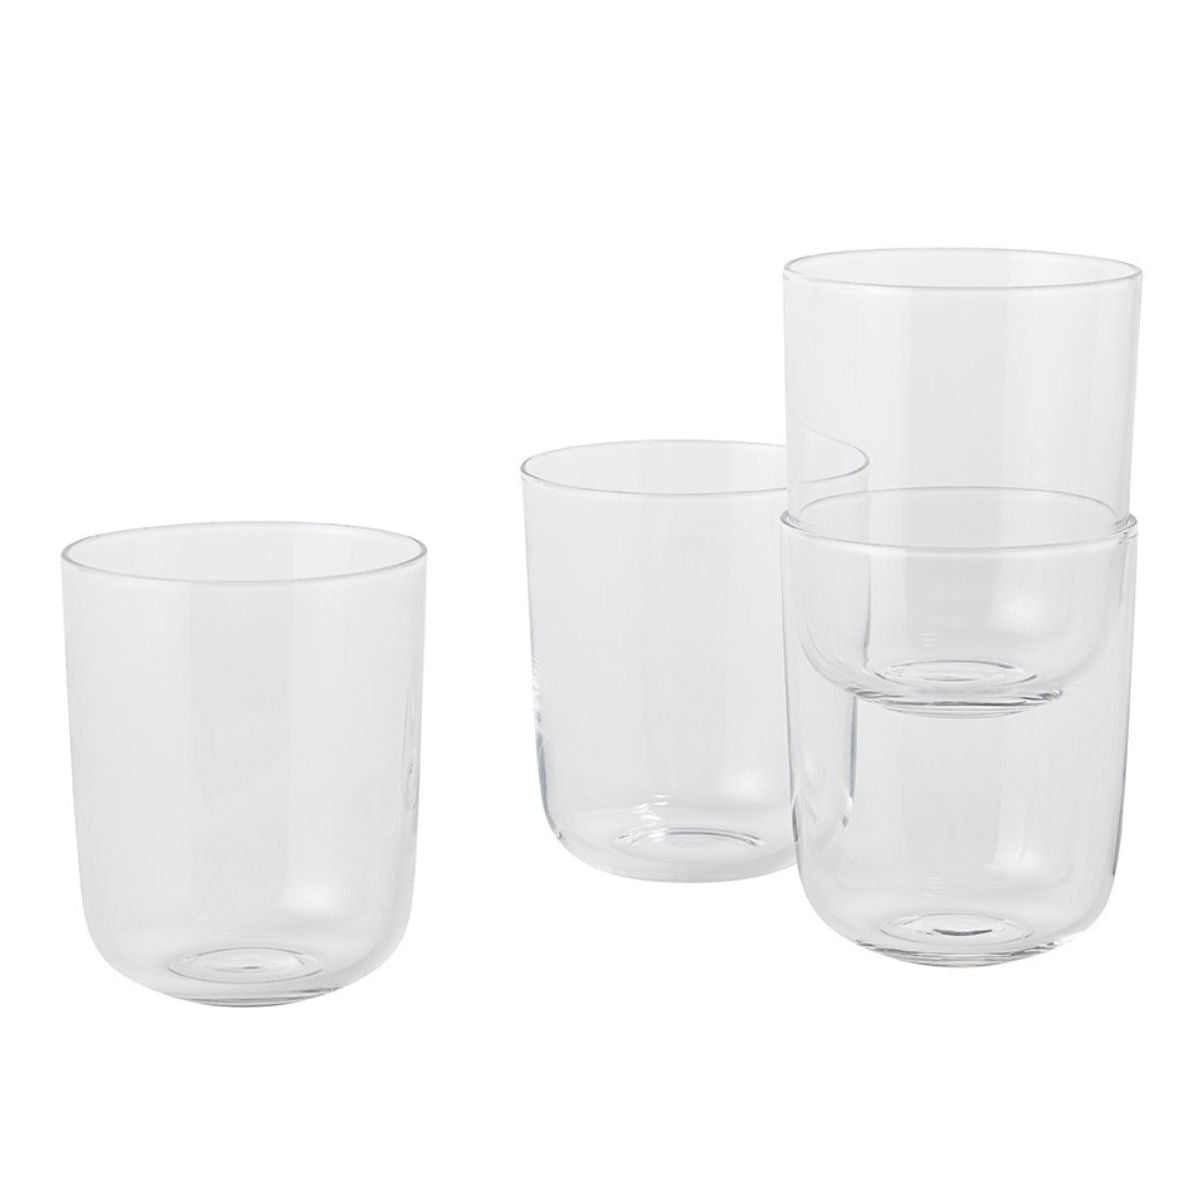 Muuto Corky glasses, set of 4